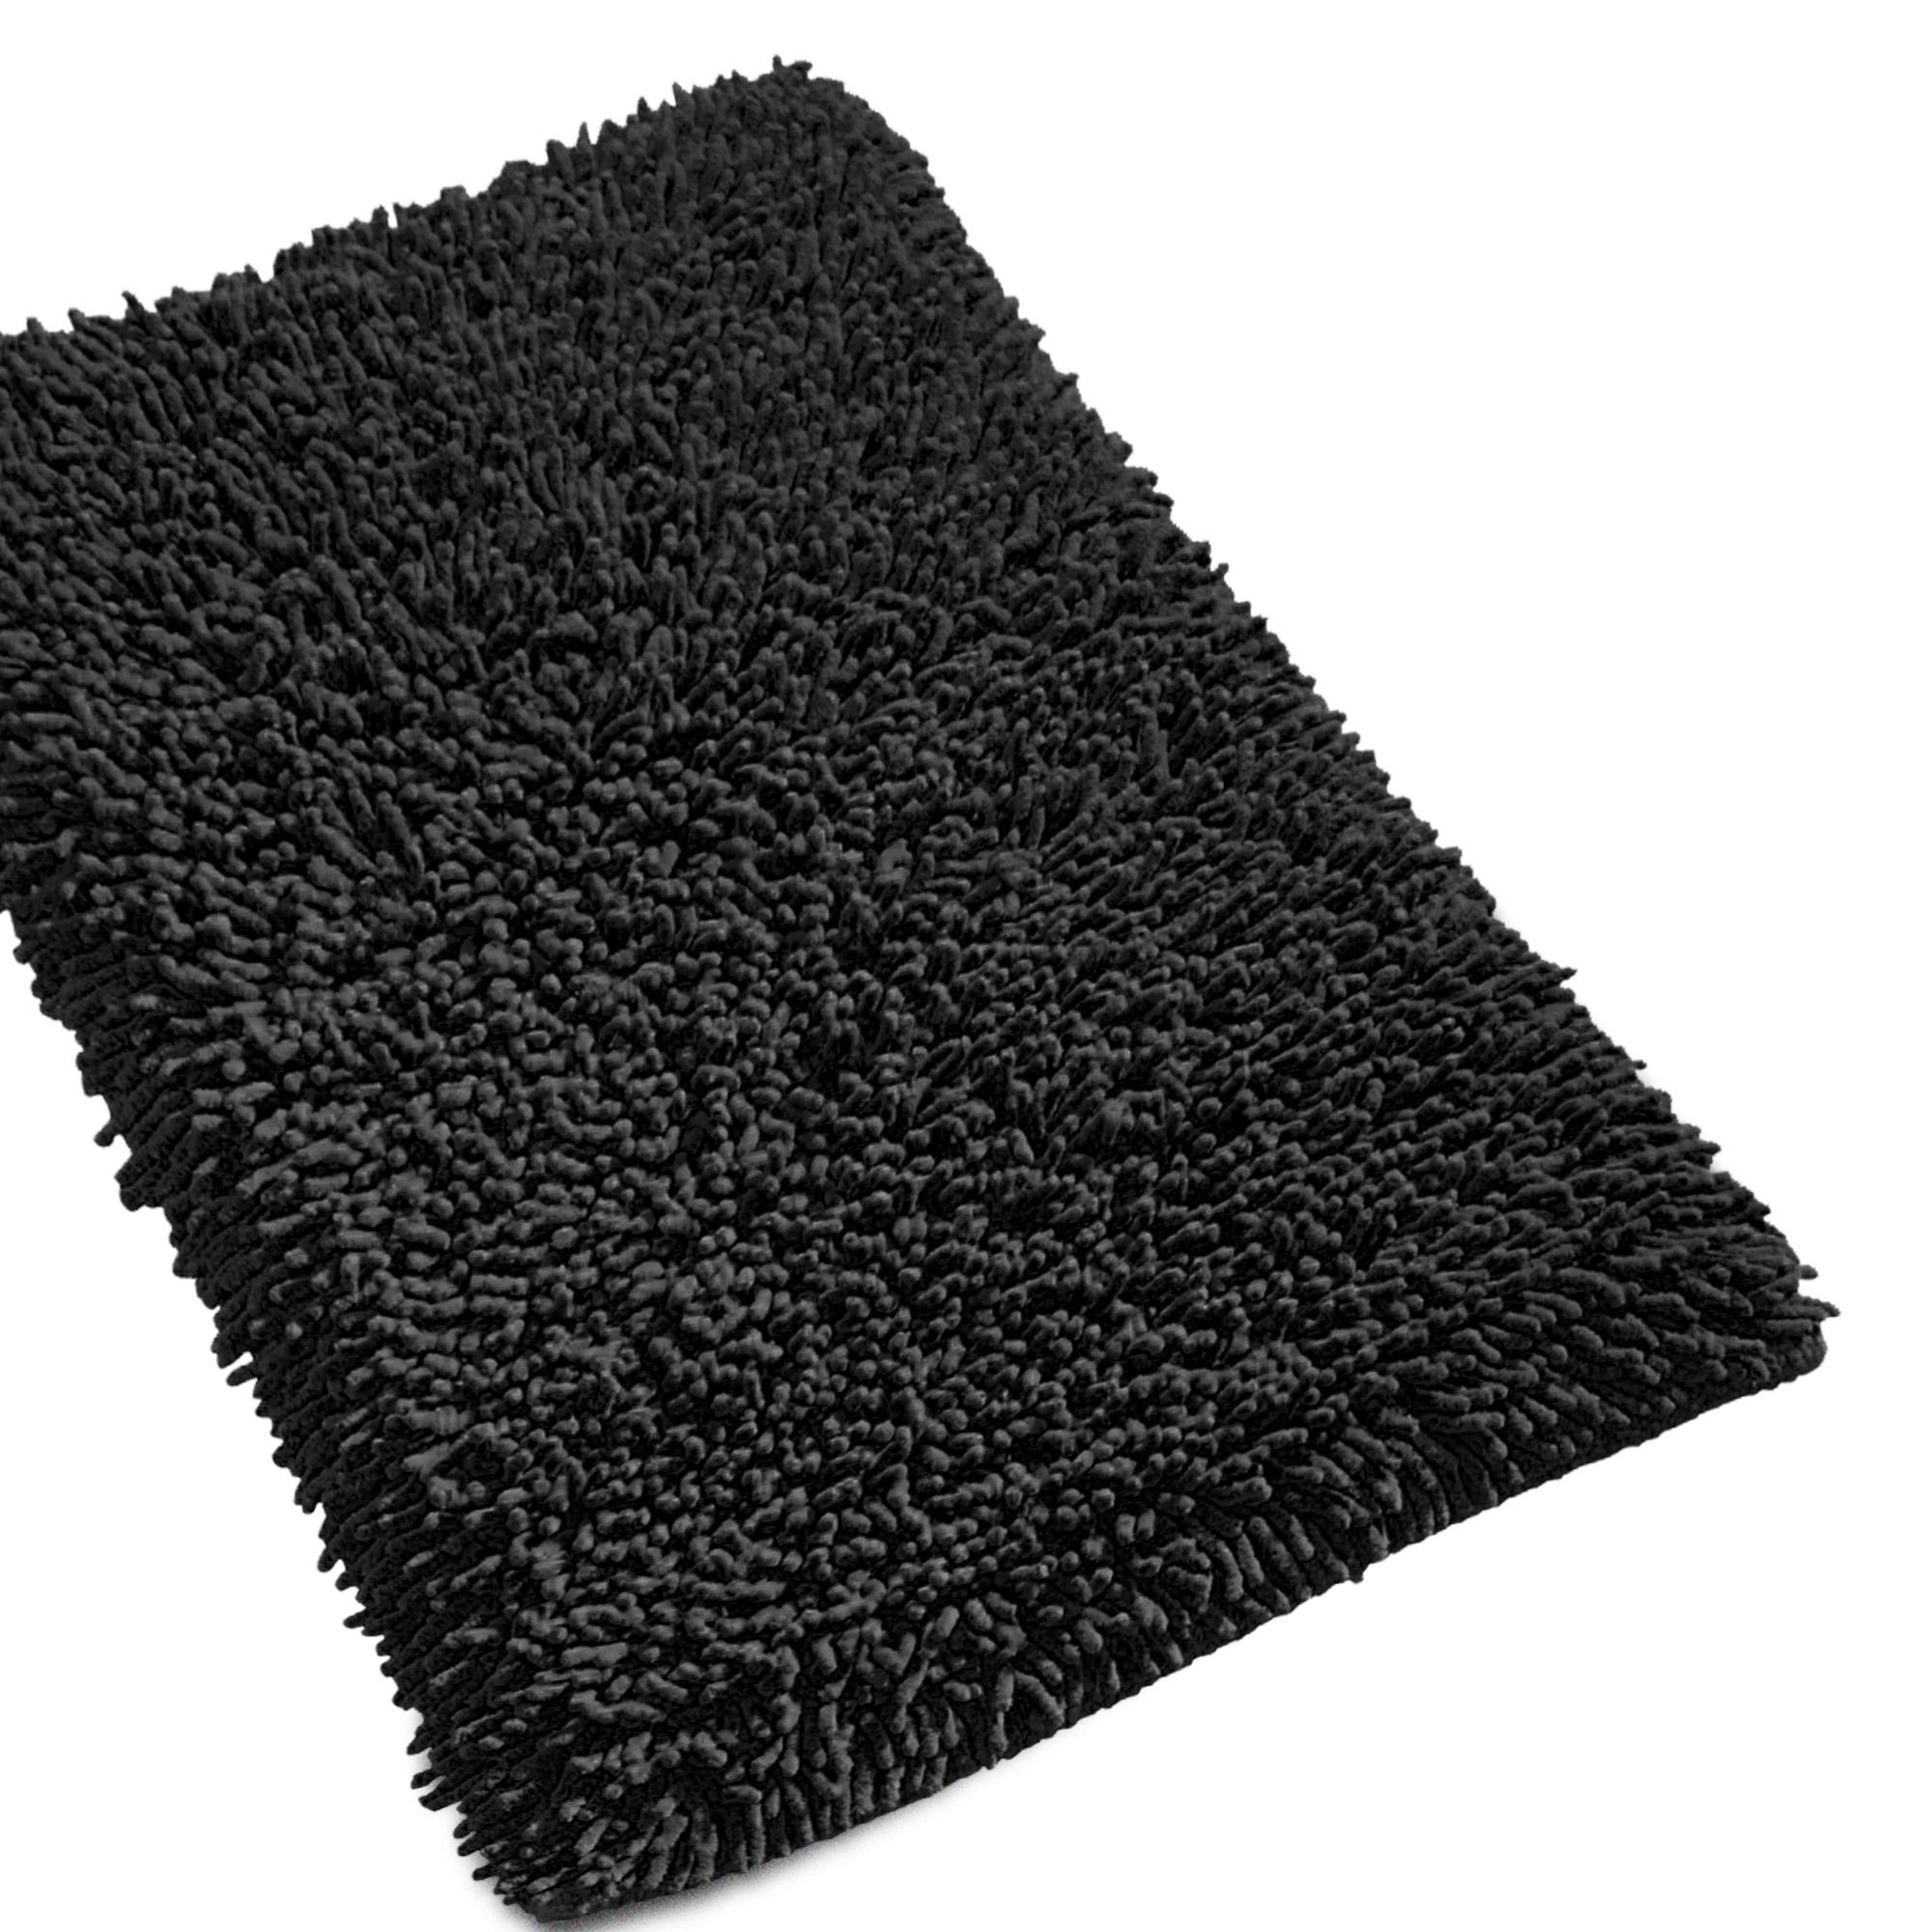 tapis de bain 50x80cm uni coton chenille noir linnea linge de maison et. Black Bedroom Furniture Sets. Home Design Ideas